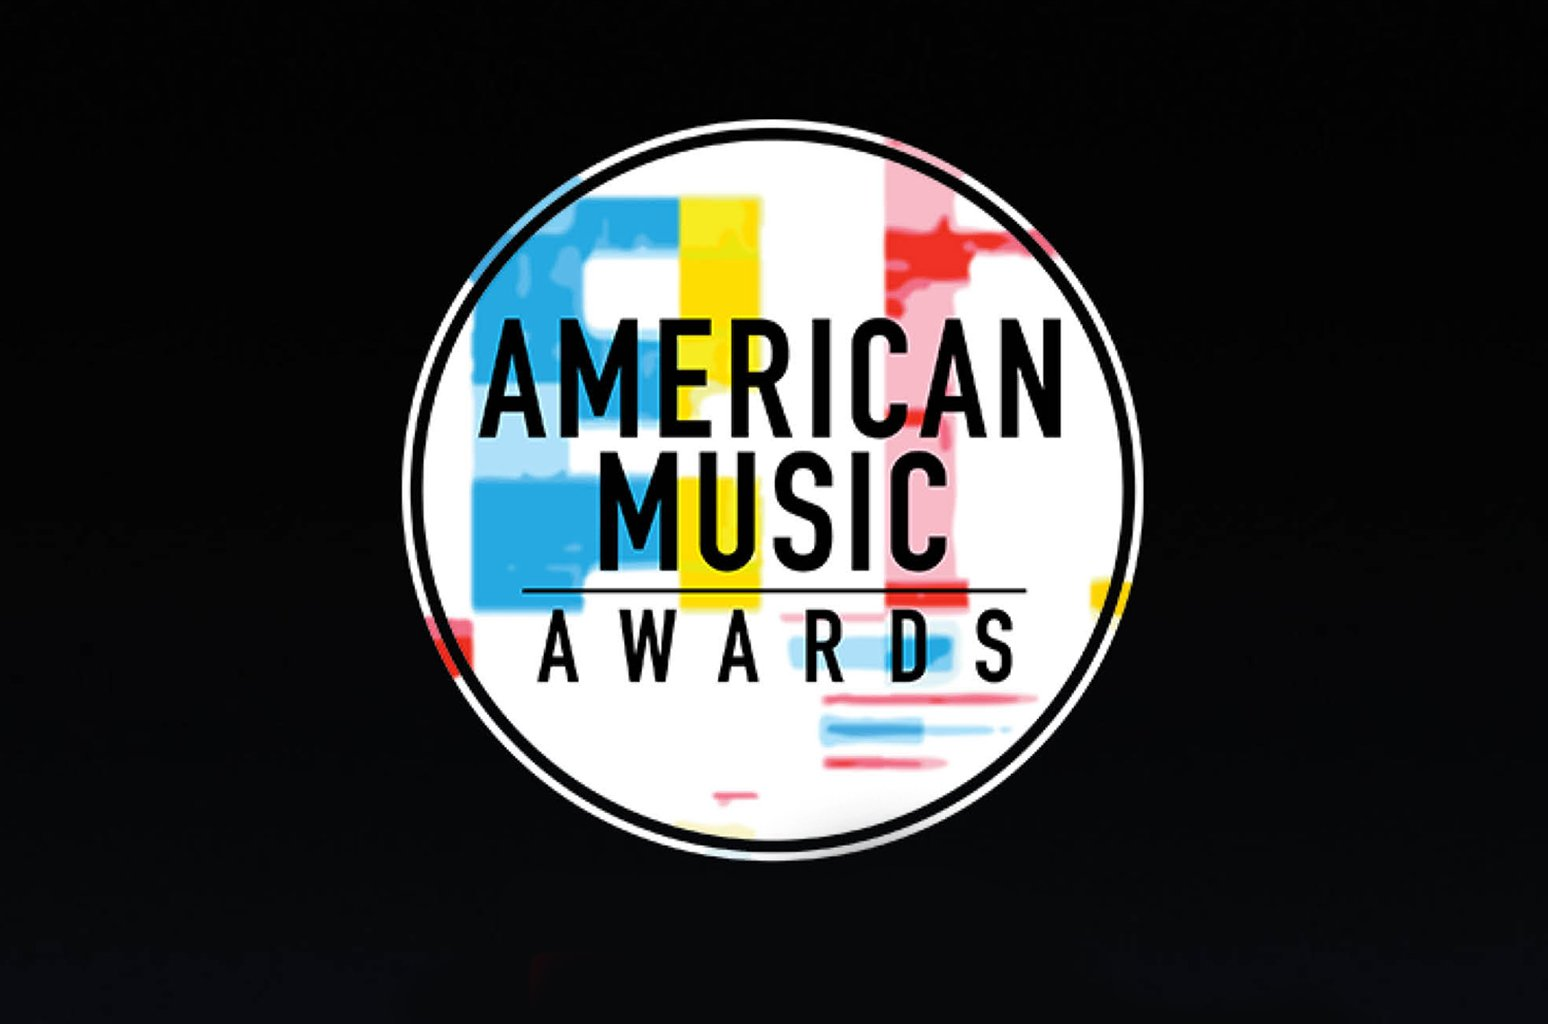 American Music Awards 2018